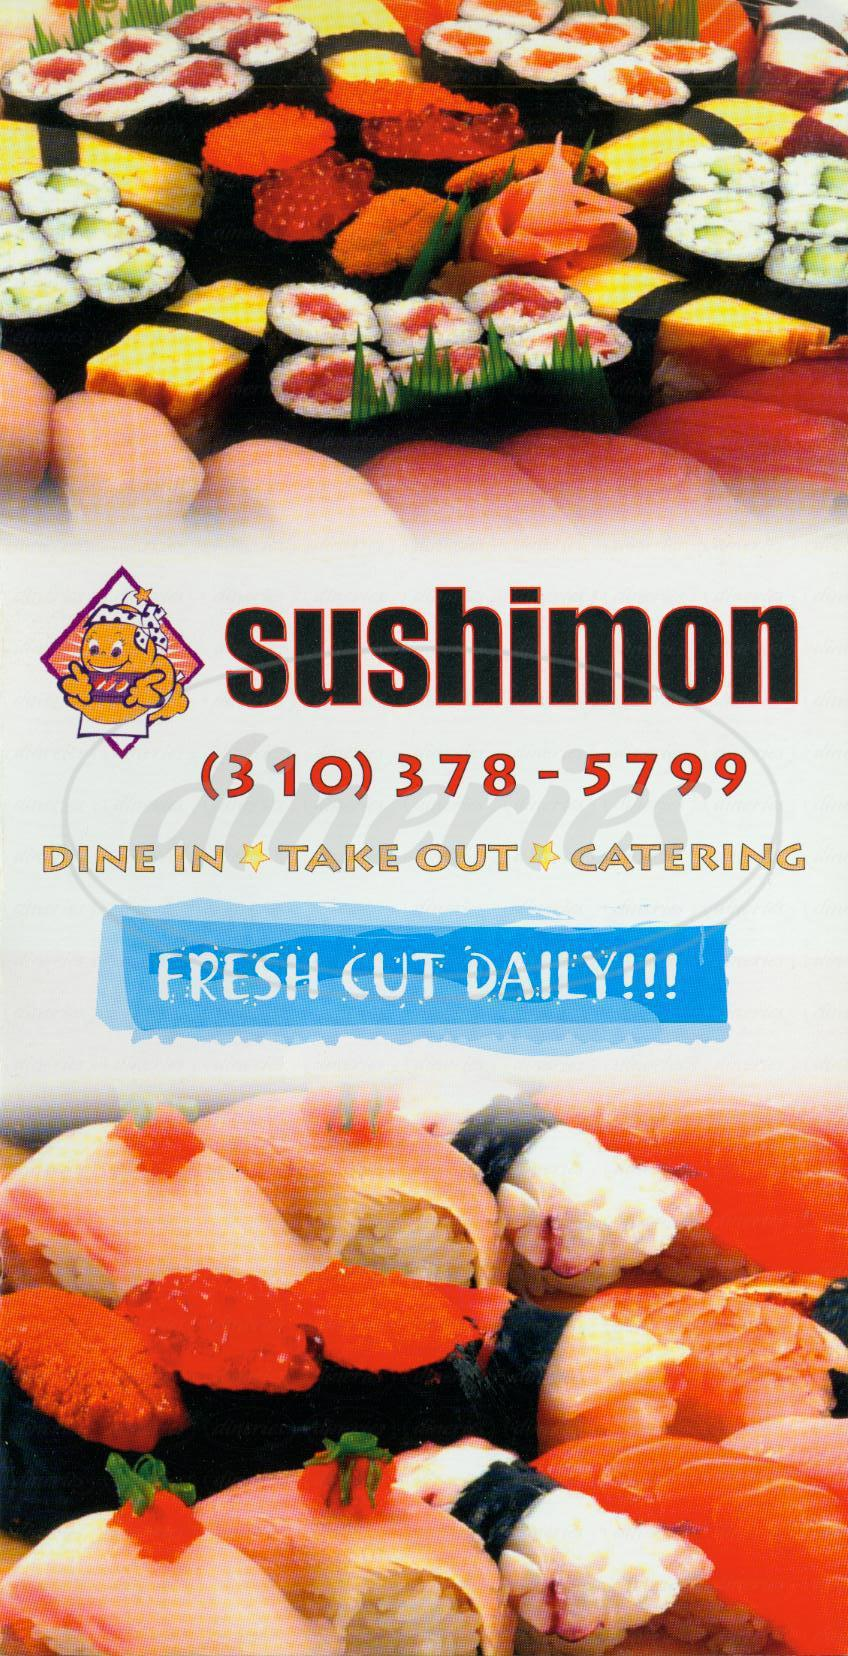 menu for Sushimon